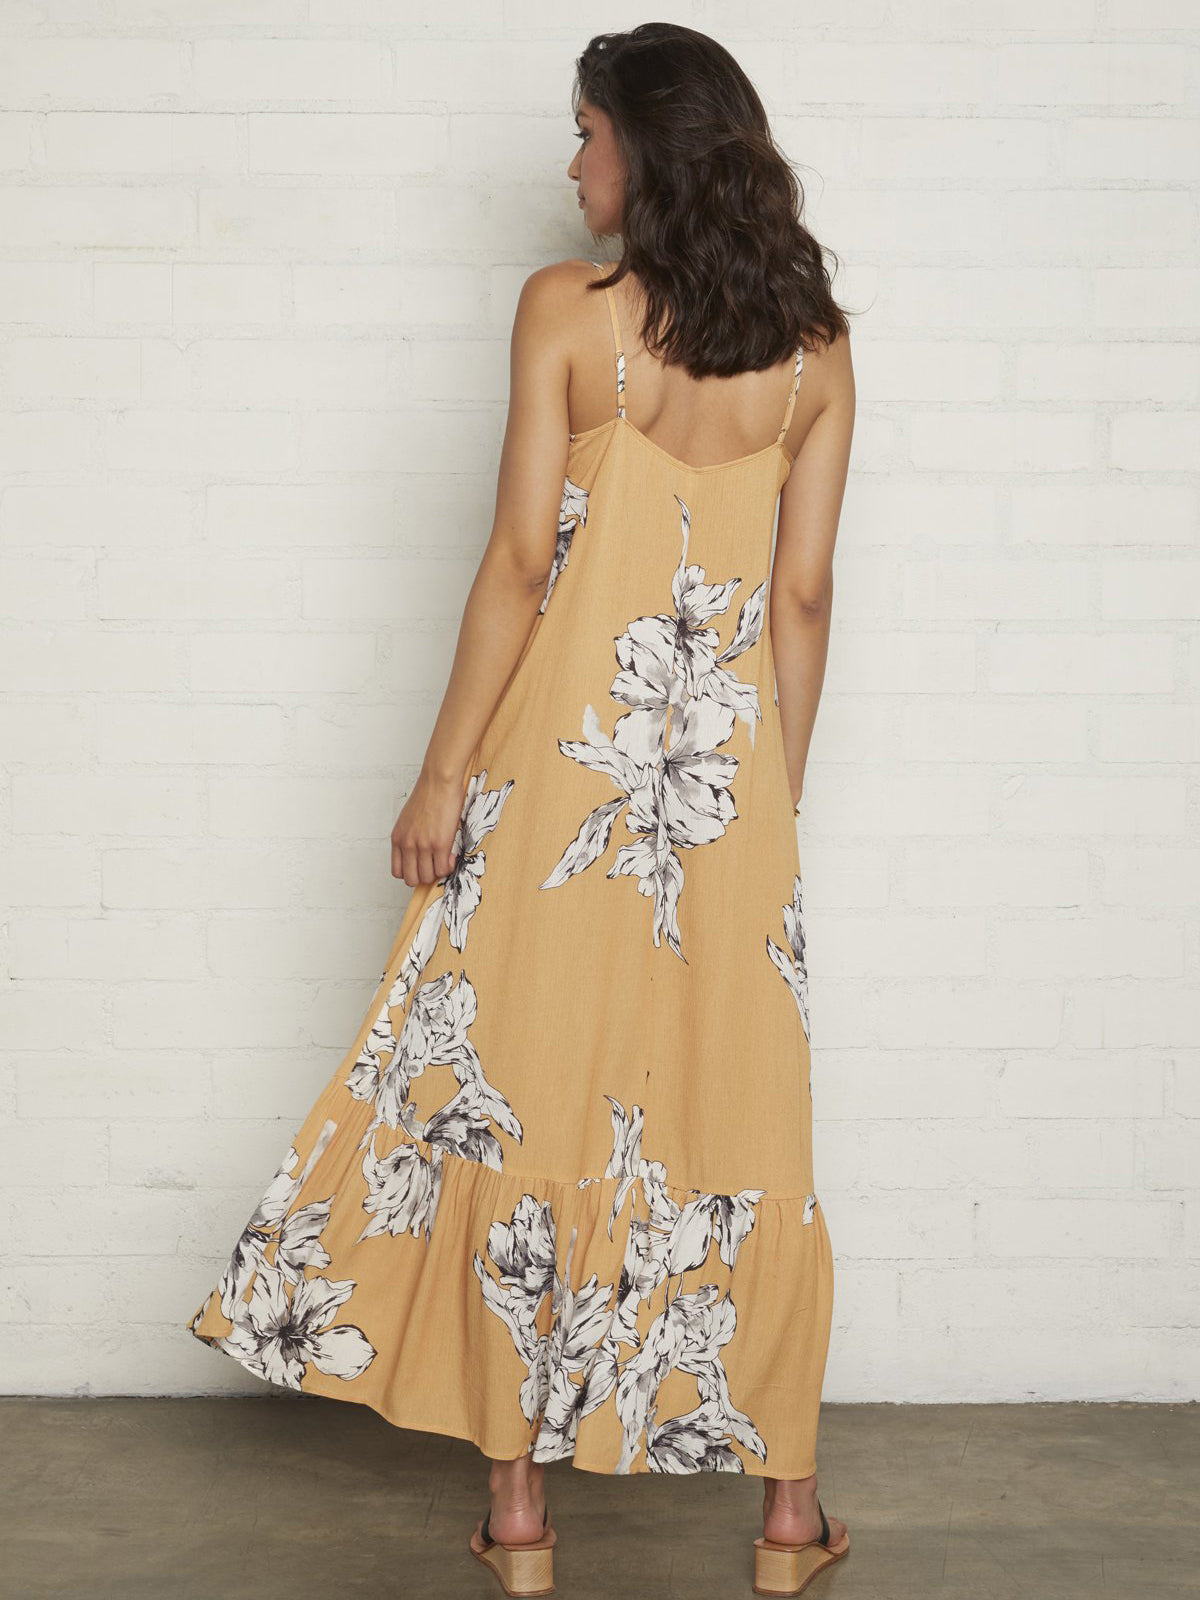 Rachel Pally Cilla Maxi Dress - Provence Yellow Floral Print | TILDEN